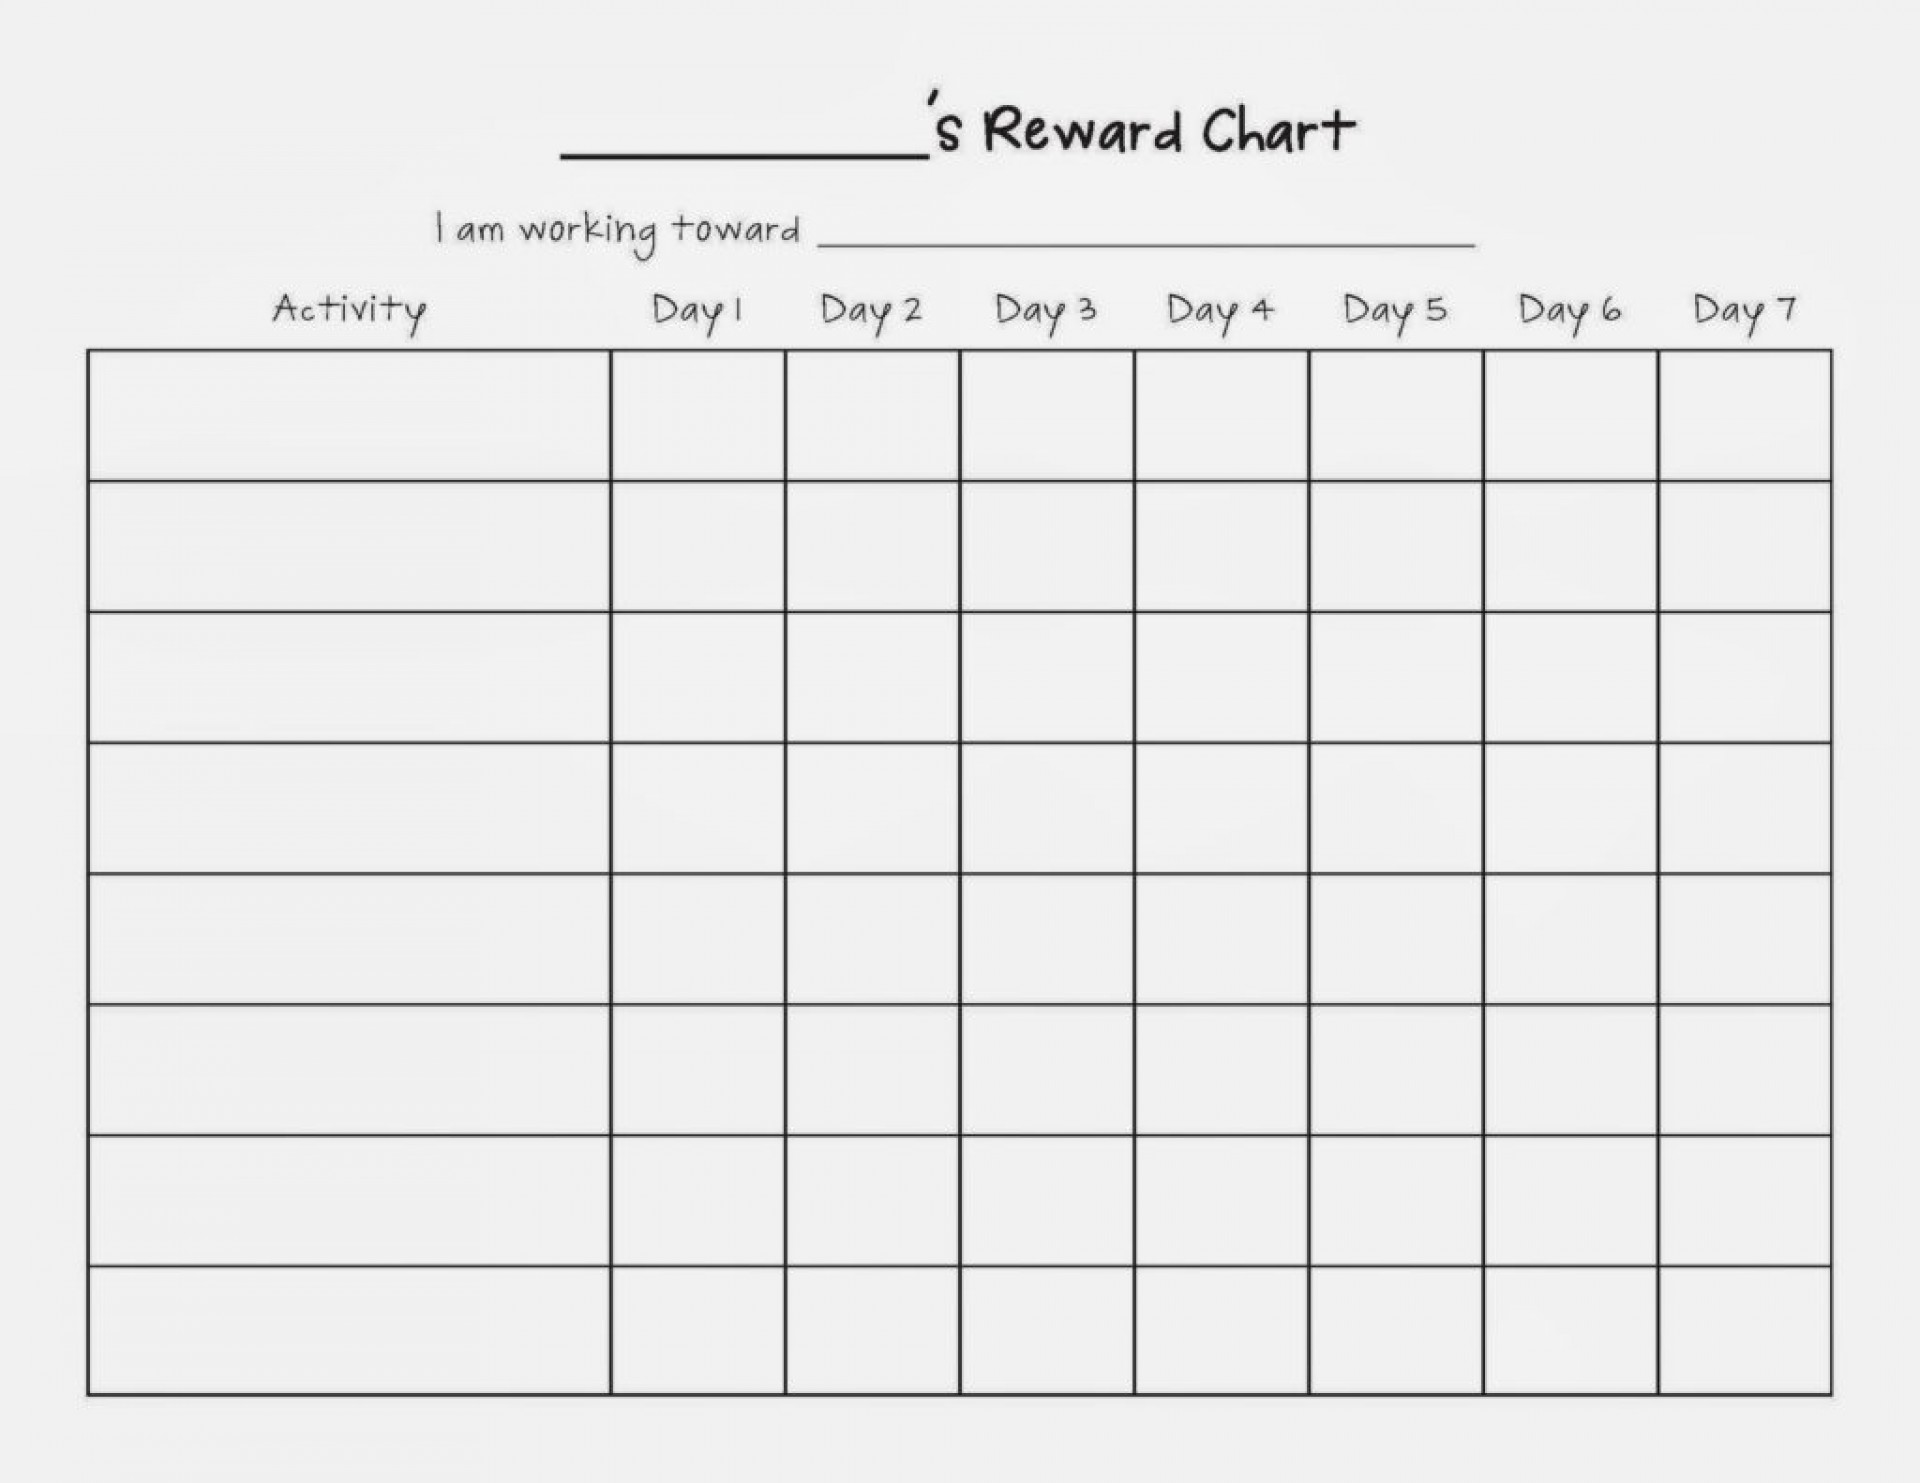 016 Uncategorized Free Weekly Reward Chart Blank Template For Children 1024x791 Essay Example Amazing Reword Generator Software 1920